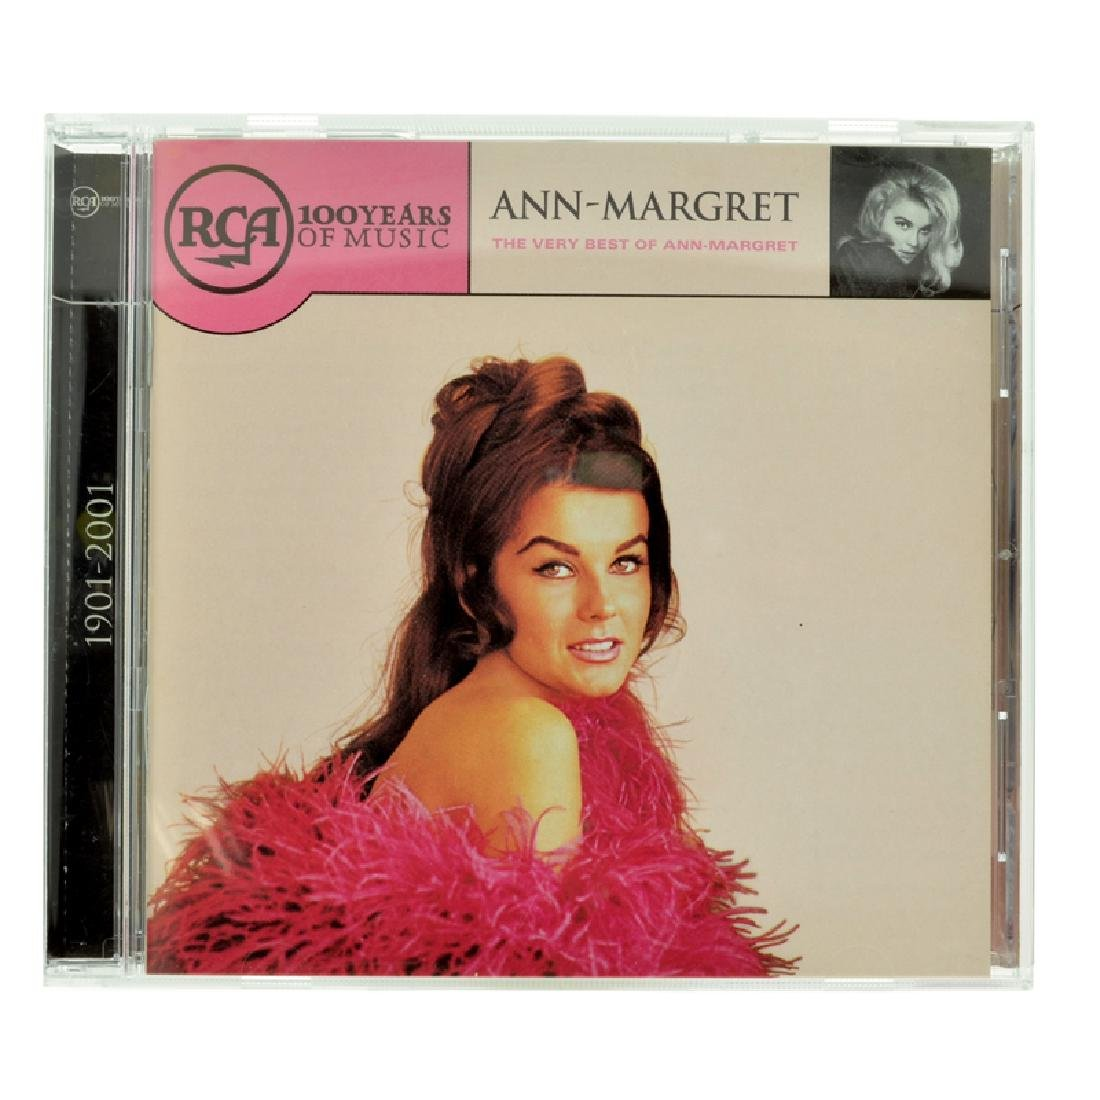 The Very Best Of Ann-Margret CDs